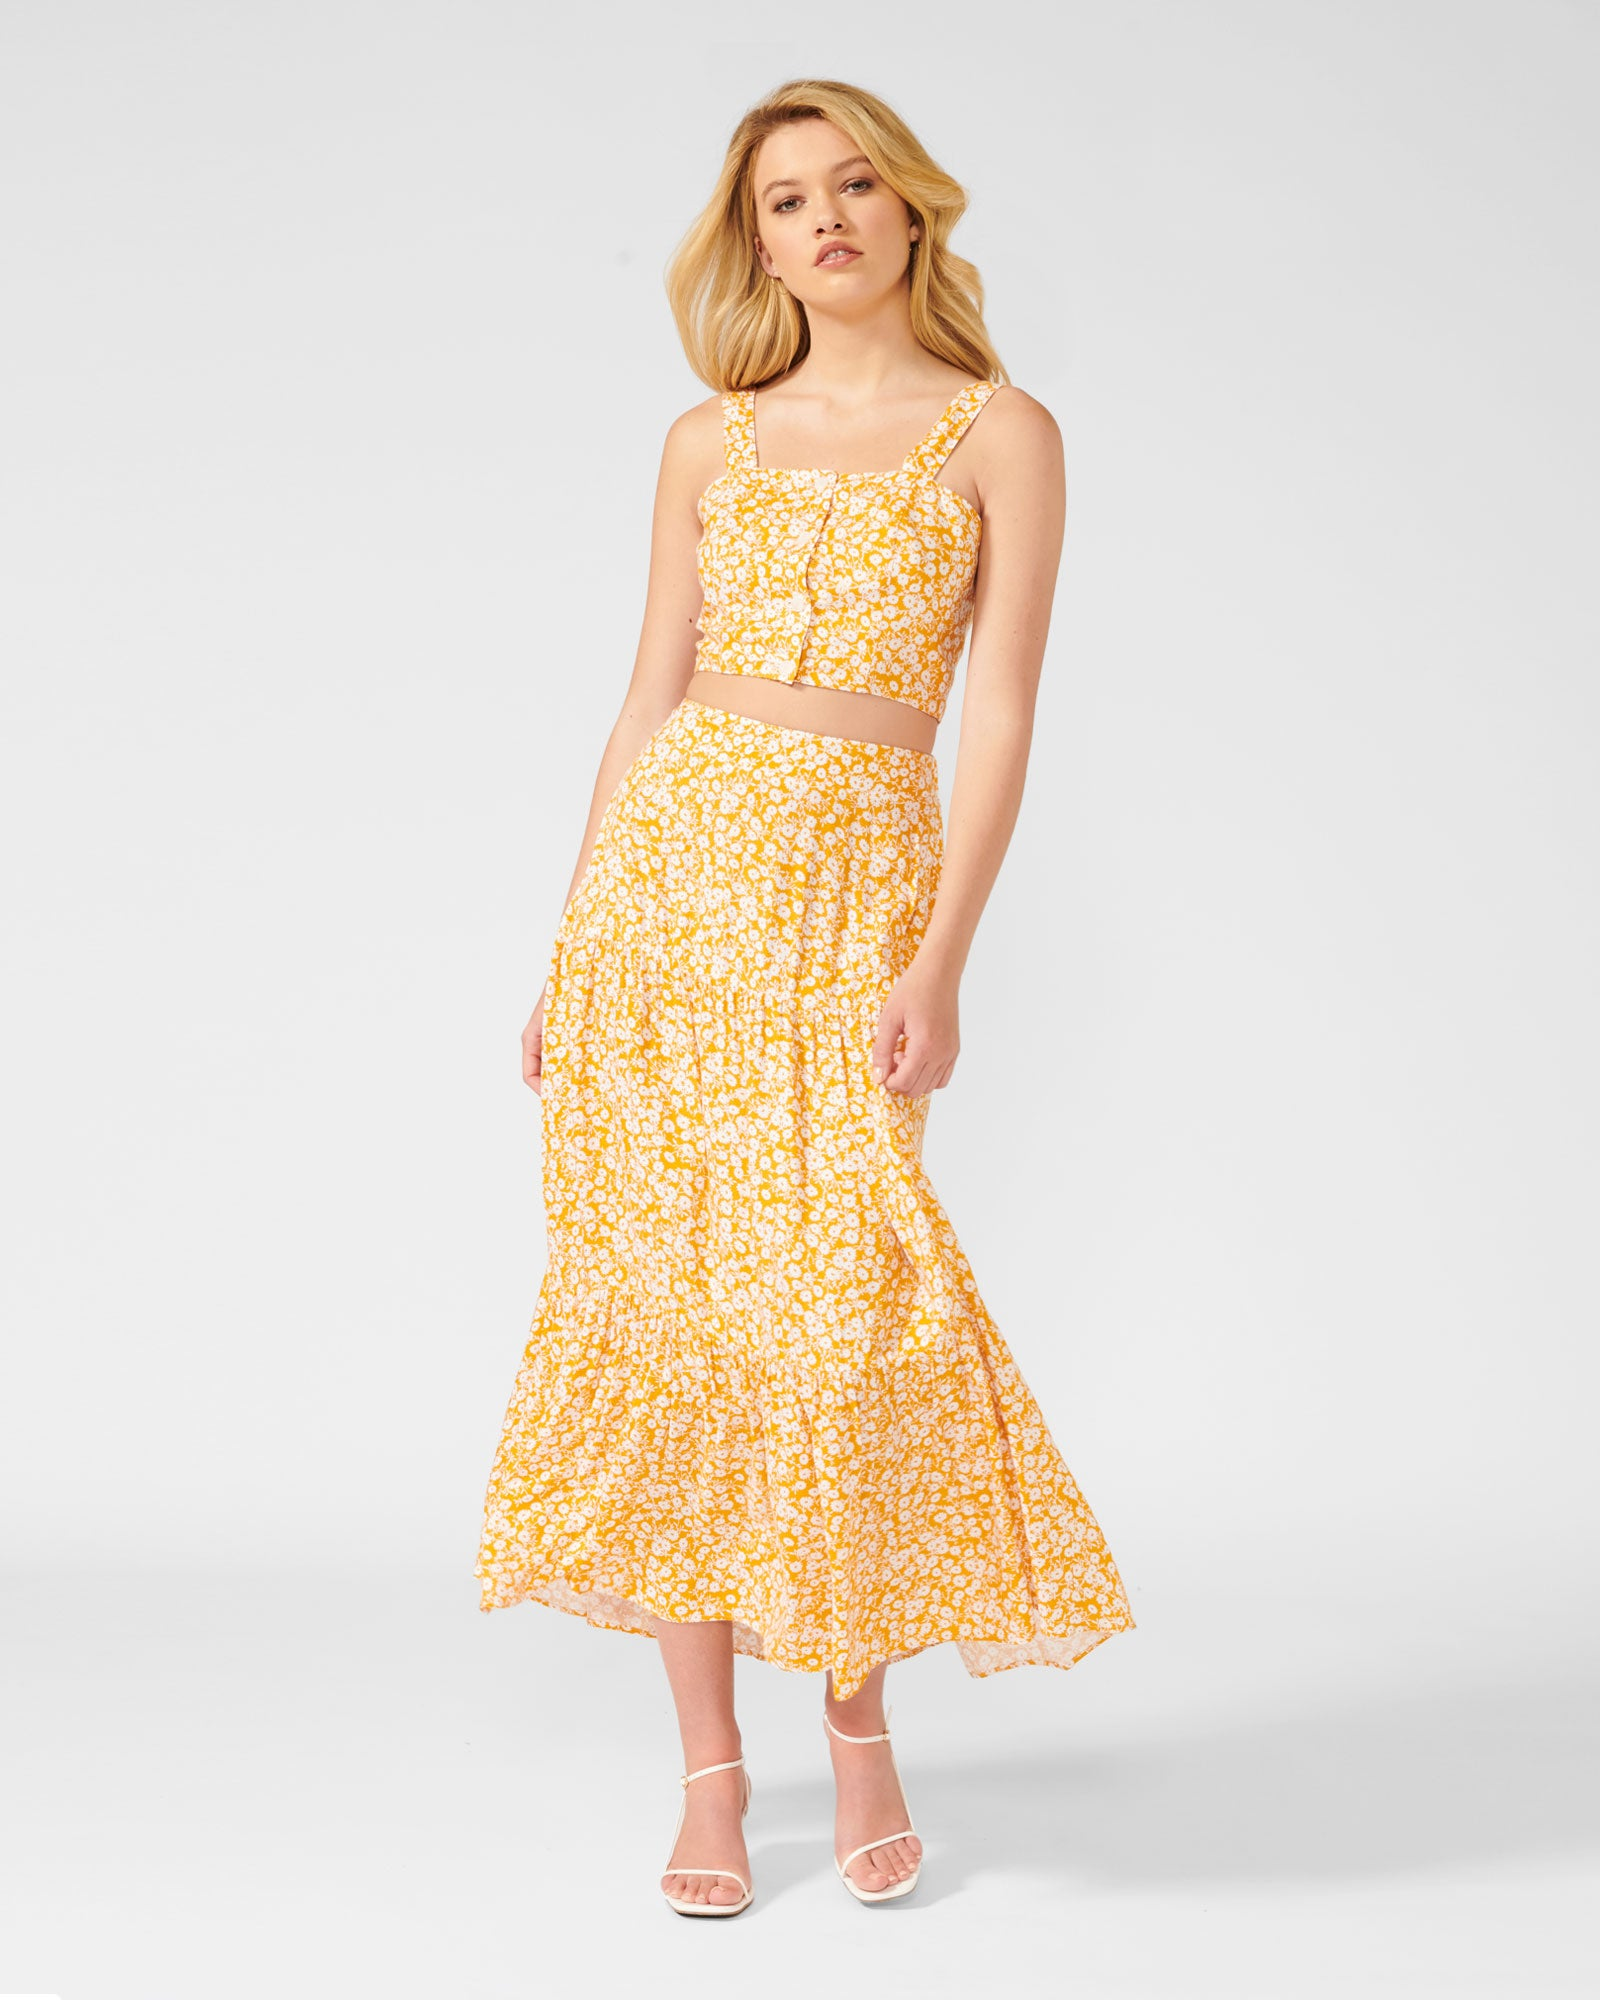 SUNSHINE IN THE RAIN SKIRT